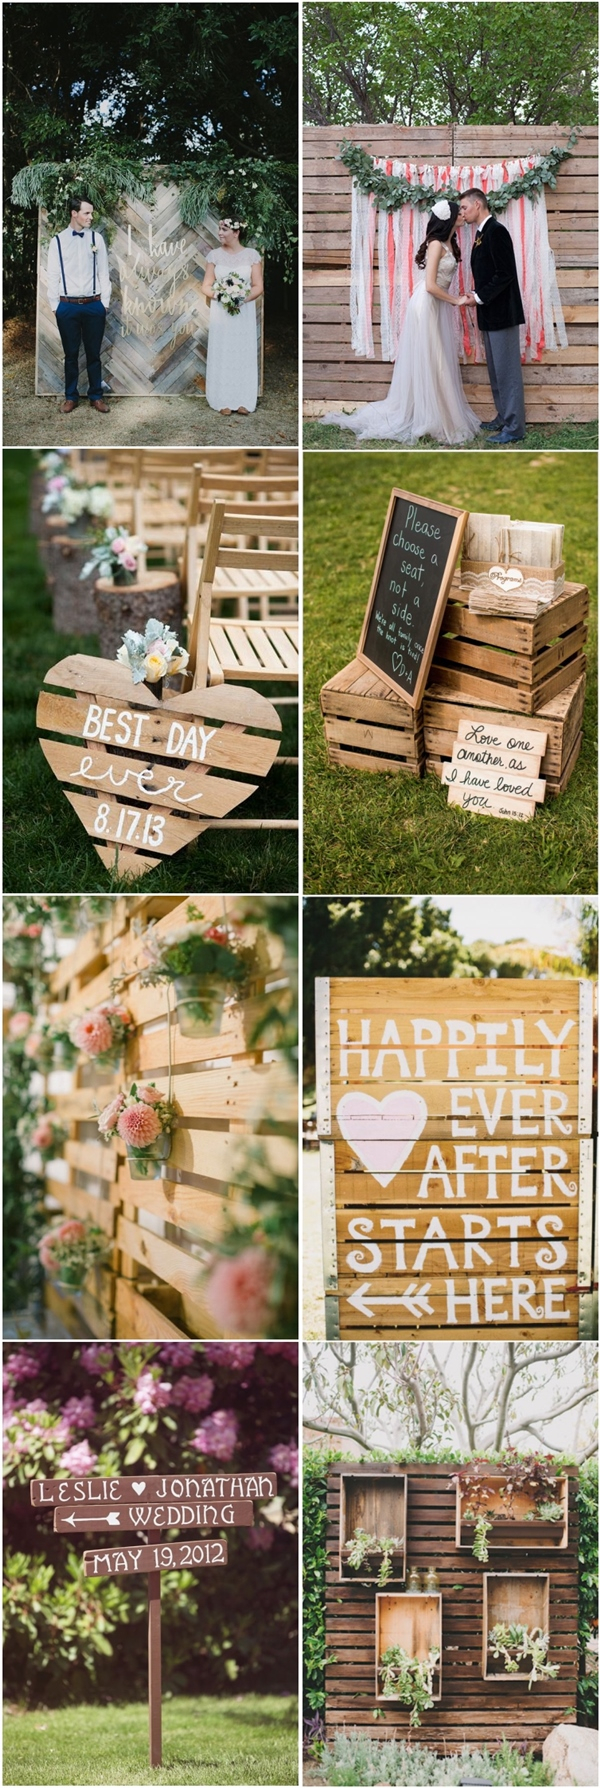 Pallets Wedding Ideas 35 Eco Chic Ways To Use Rustic Wood Pallets In Your Wedding Deer